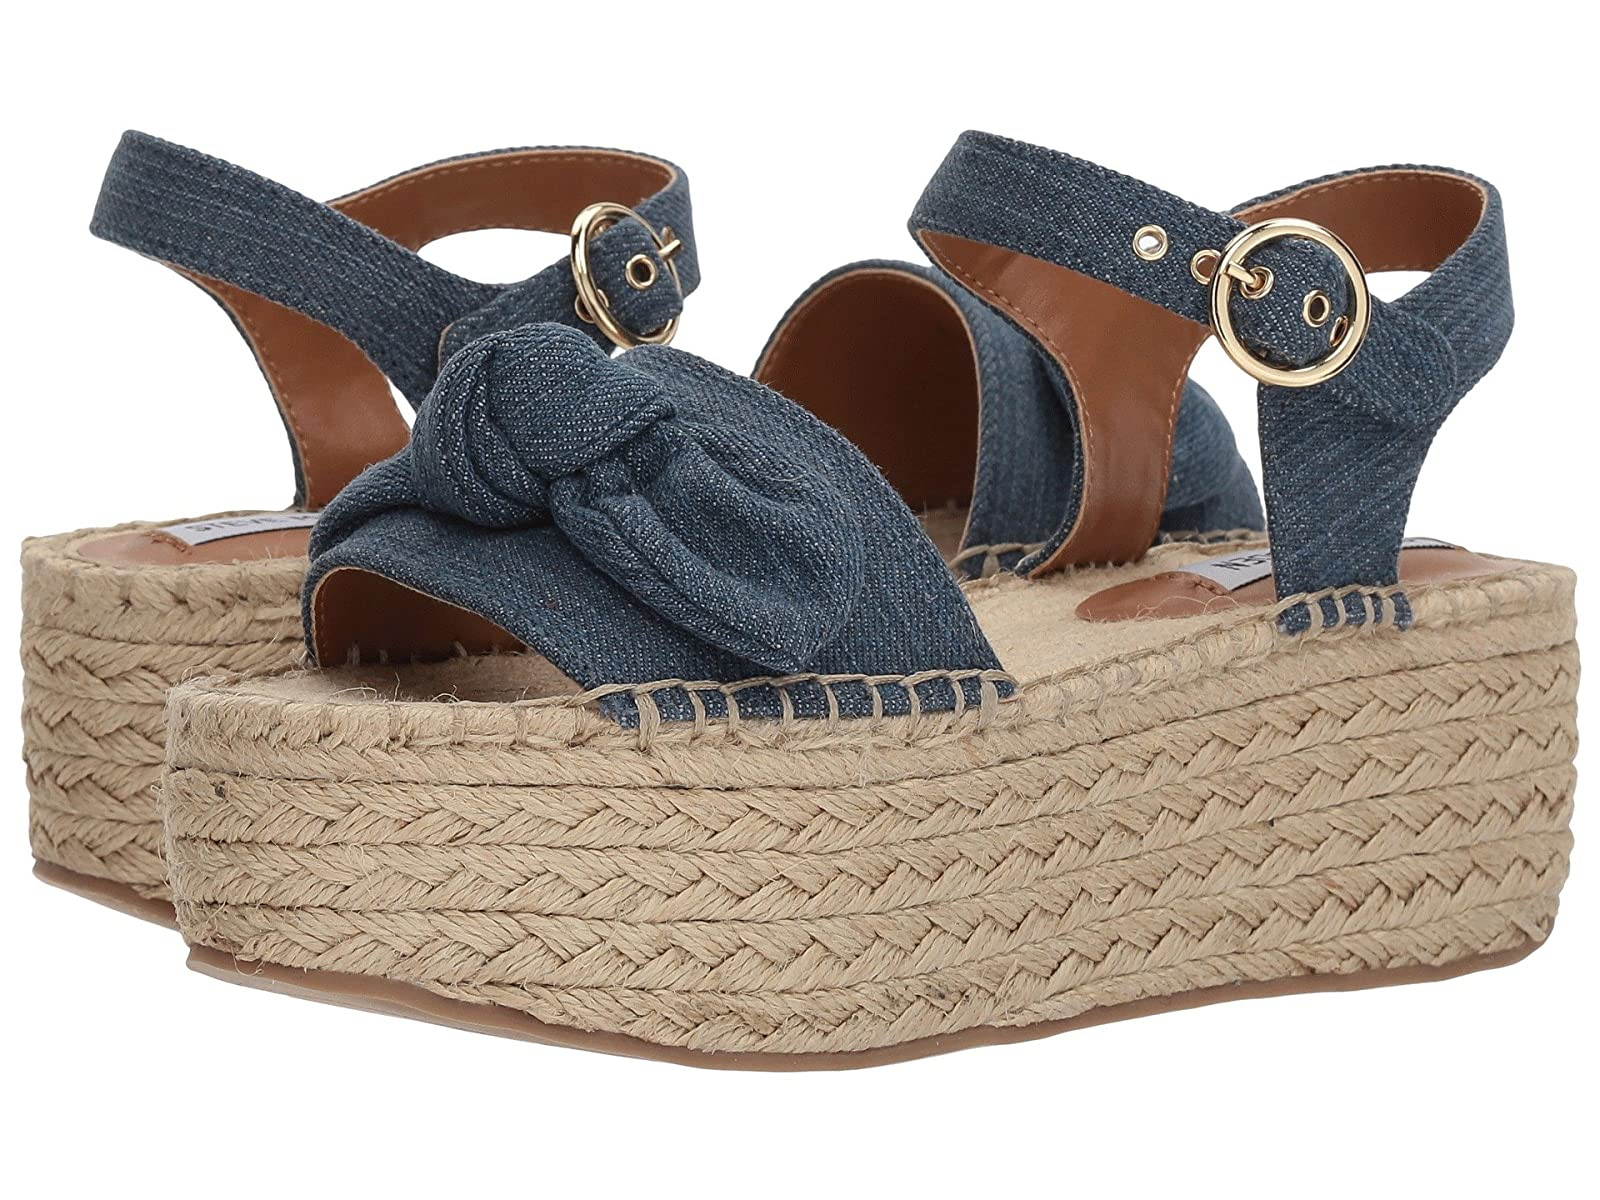 Steve Madden Union Espadrille Wedge SandalCheap and distinctive eye-catching shoes